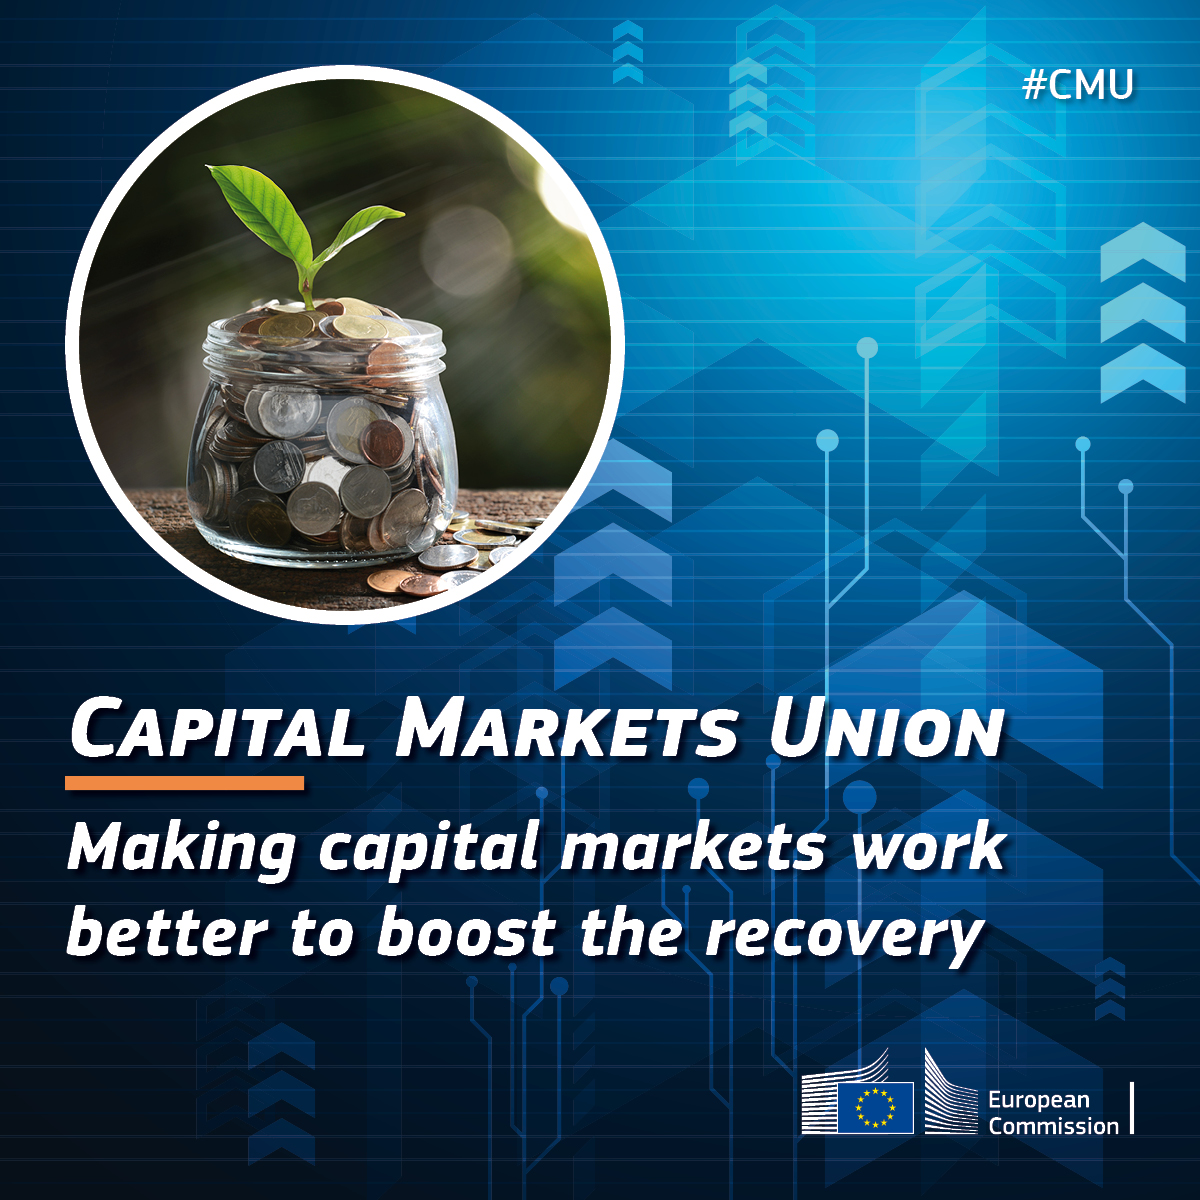 What's next for the Capital Markets Union? Find out this Thursday 24th! #CMU #NextGenerationEU